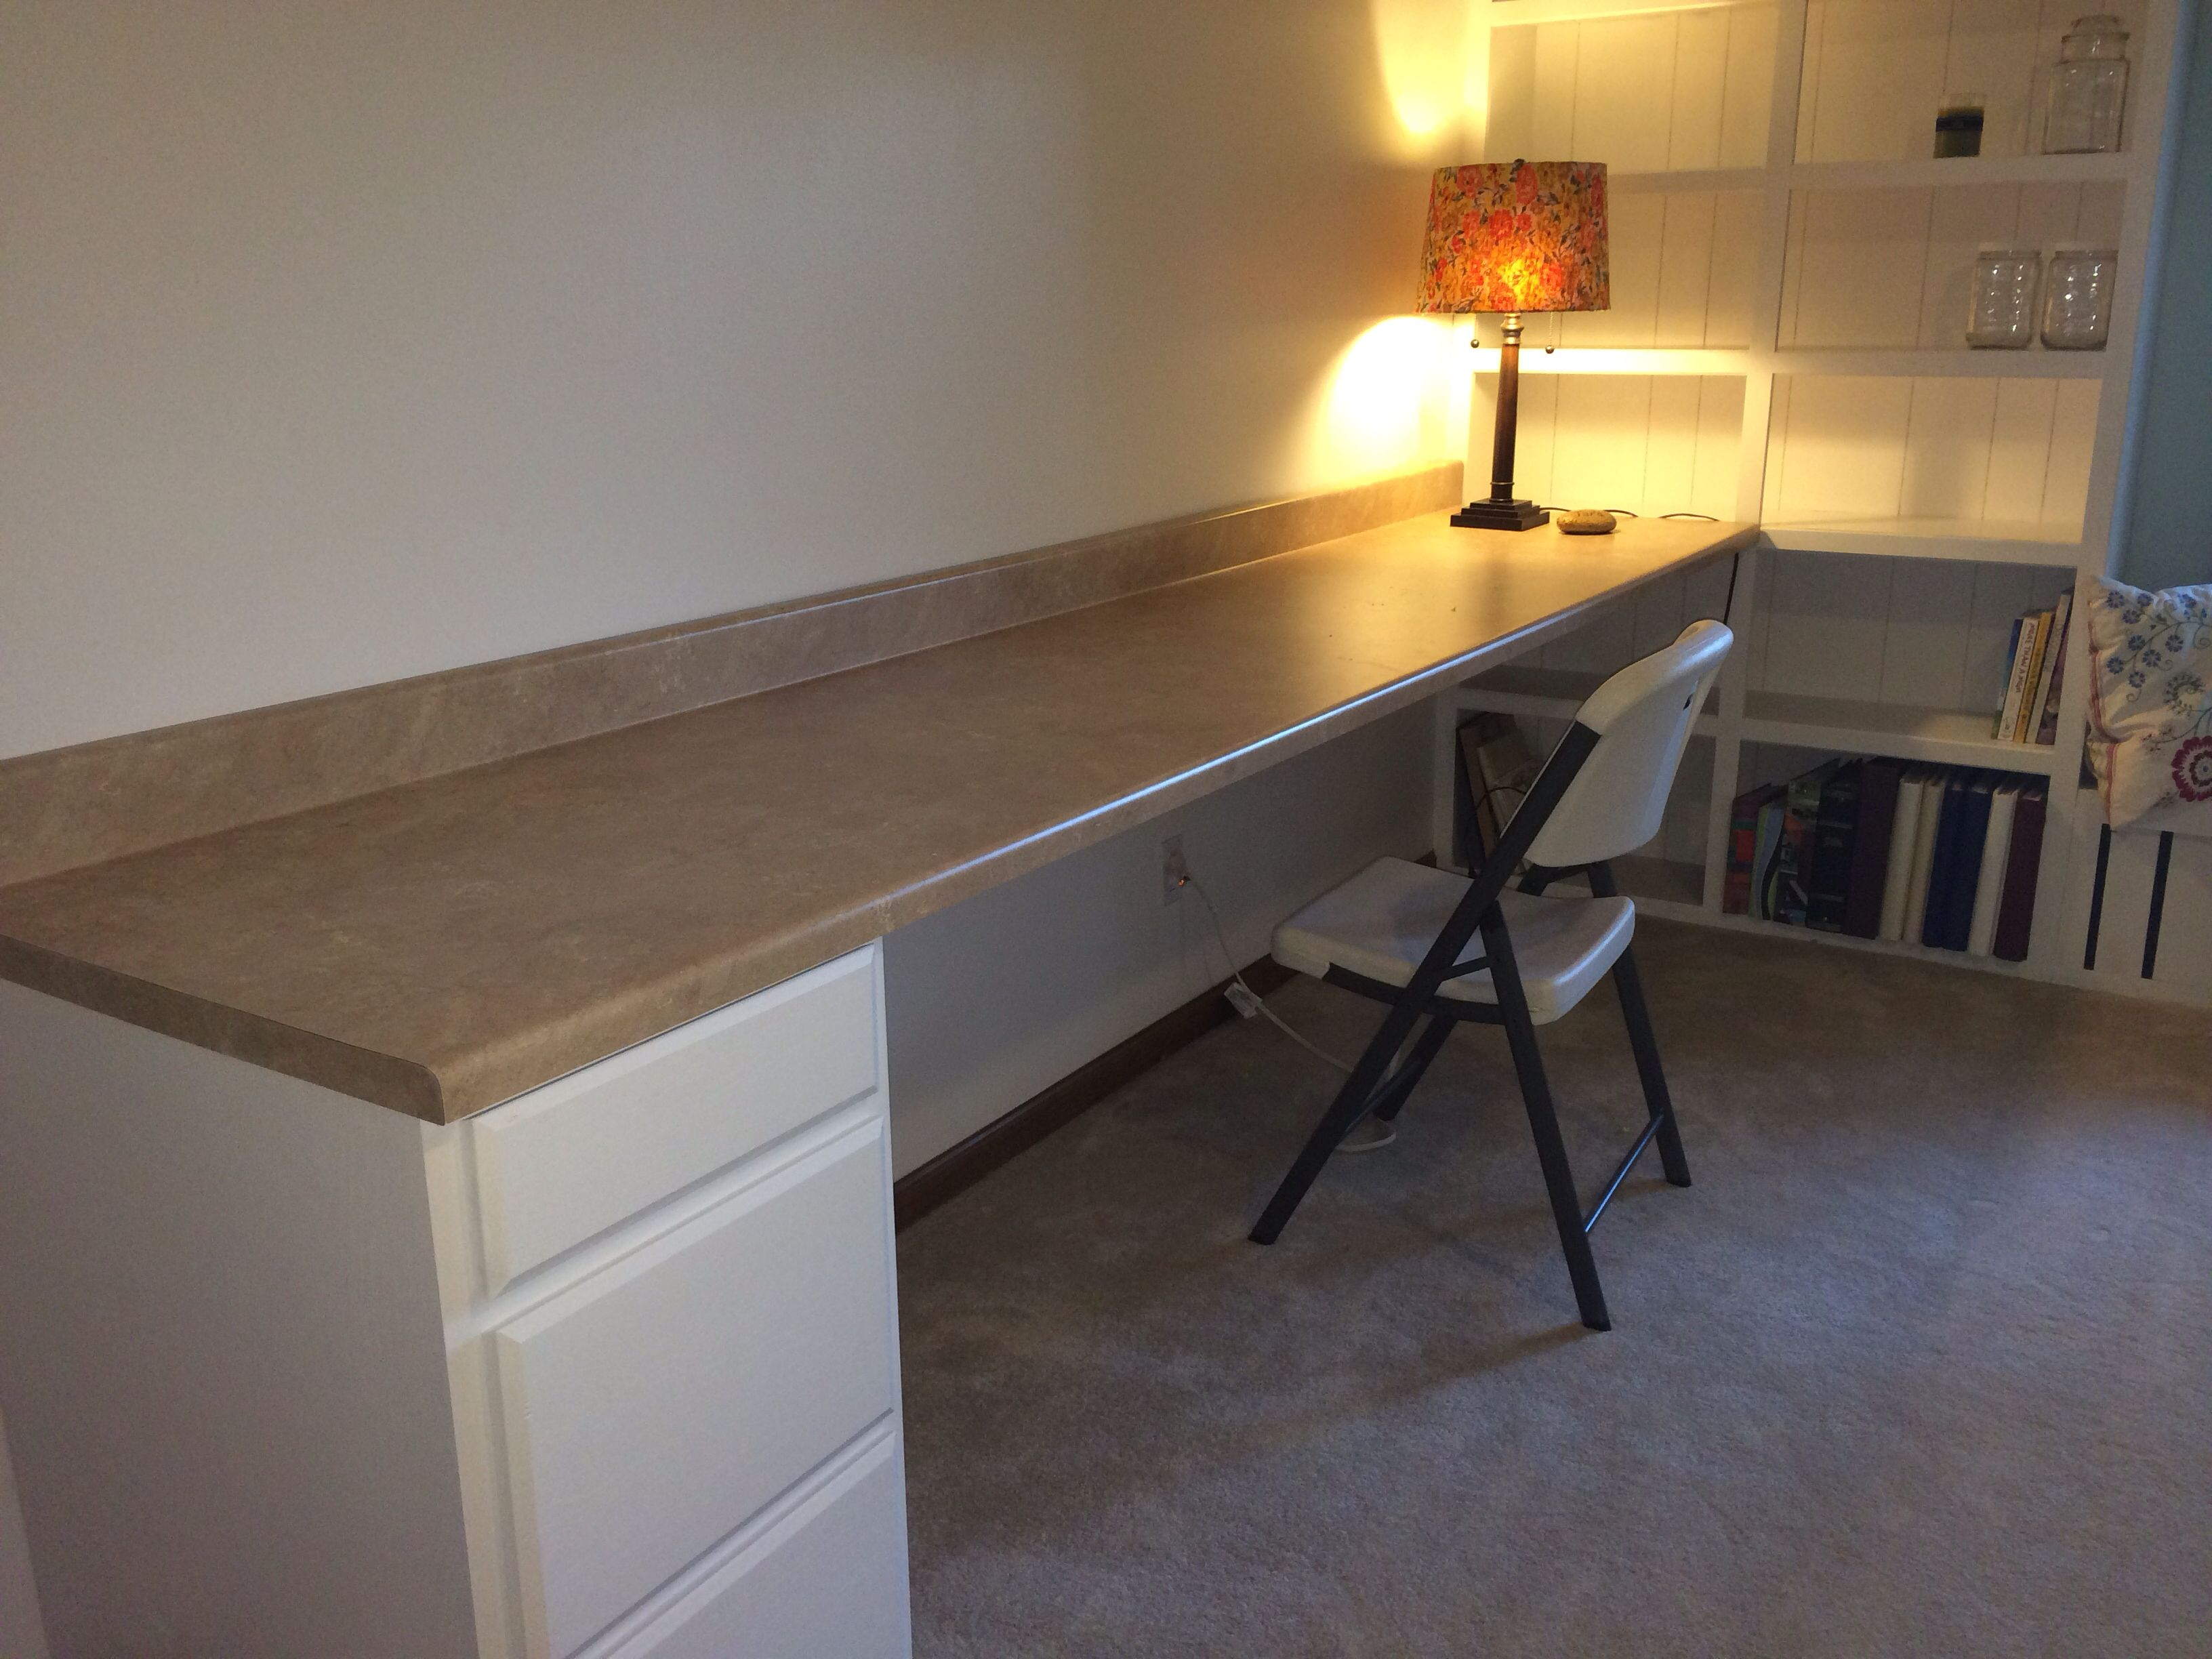 Laminate Countertop Desk Craft Room 10 Foot Laminate Countertop From Lowes 105 00